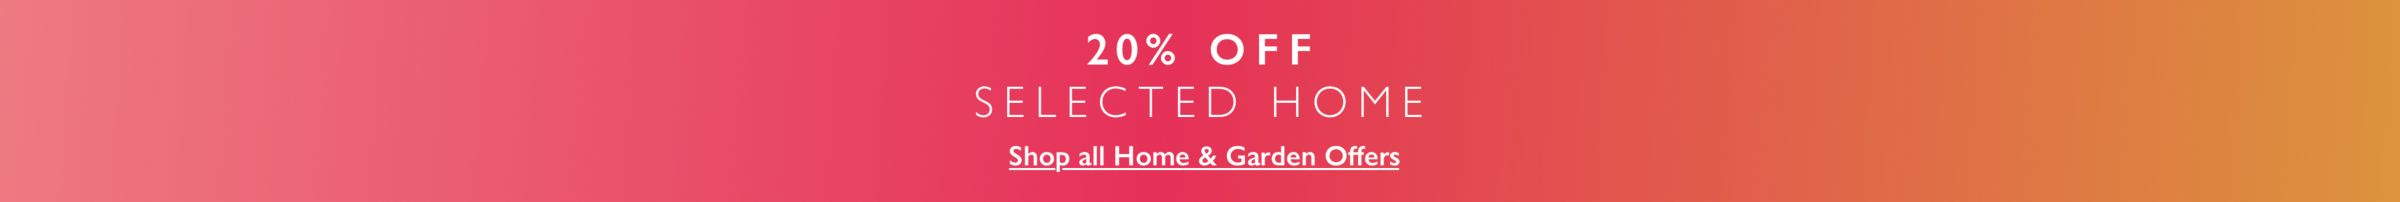 20 PERCENT OFF SELECTED HOME BANNER